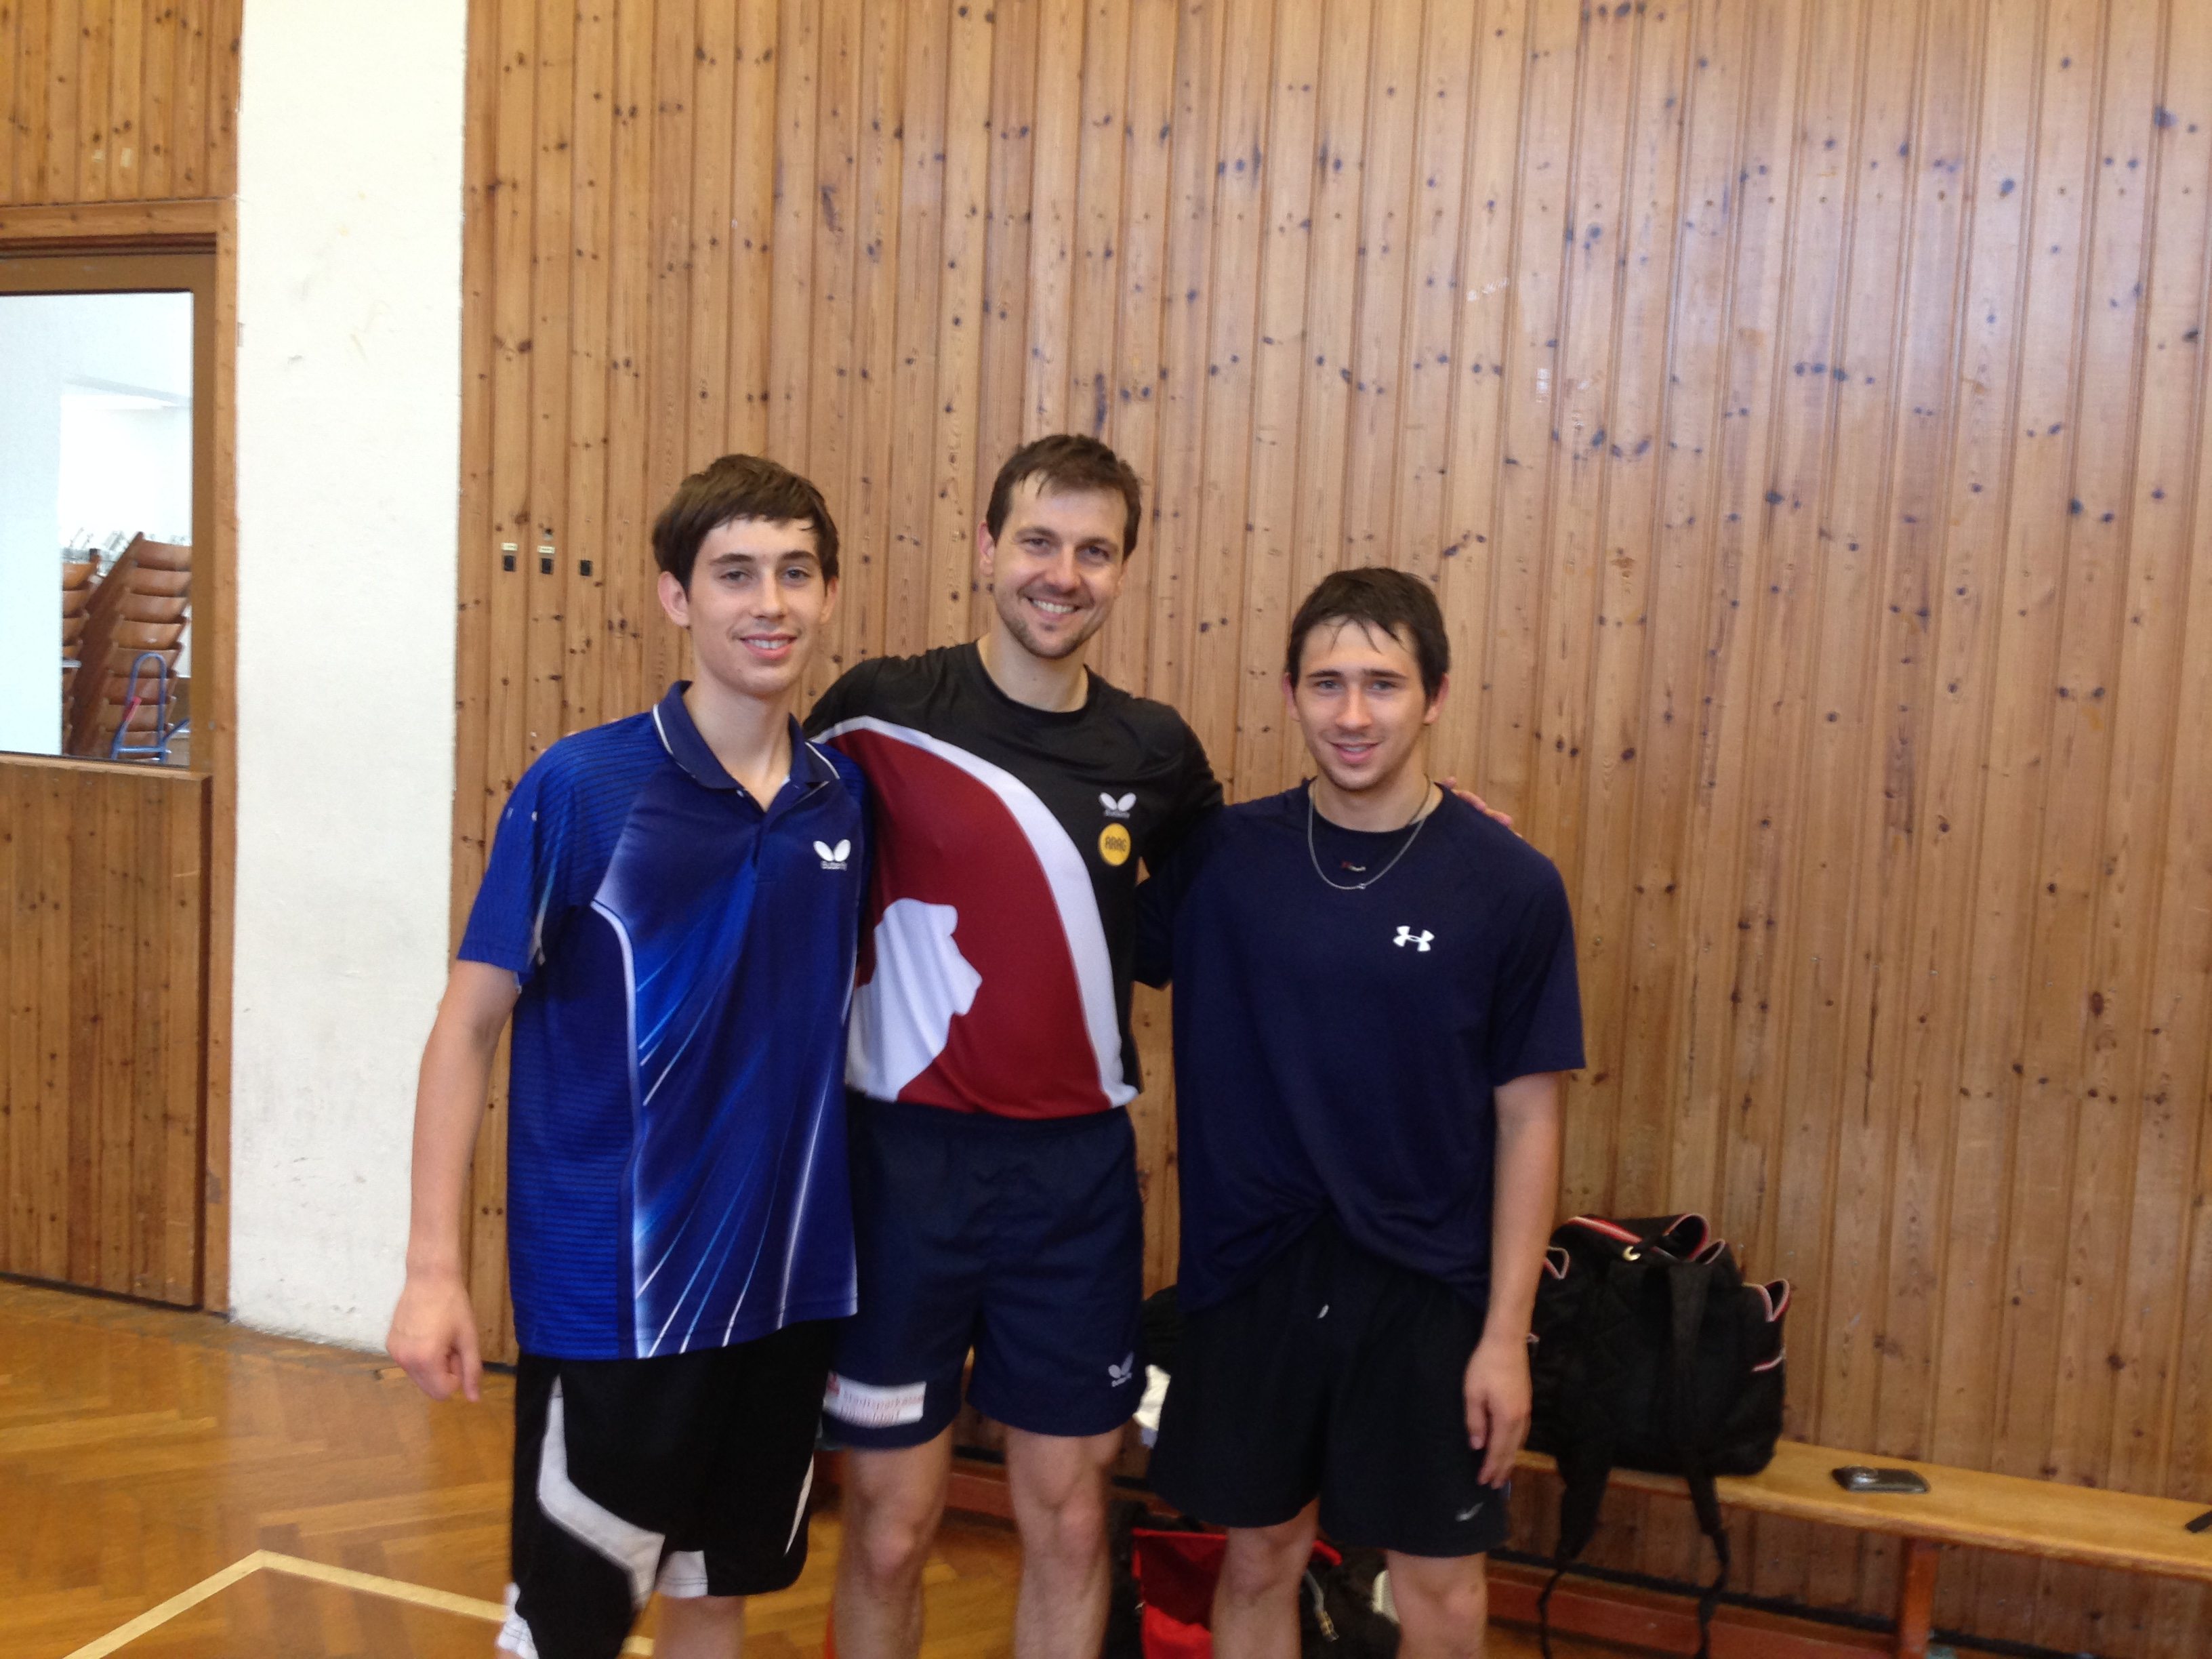 Connor and Chase got to meet Timo Boll (previous world number 1) in Germany thanks to their coach Thomas Keinath.